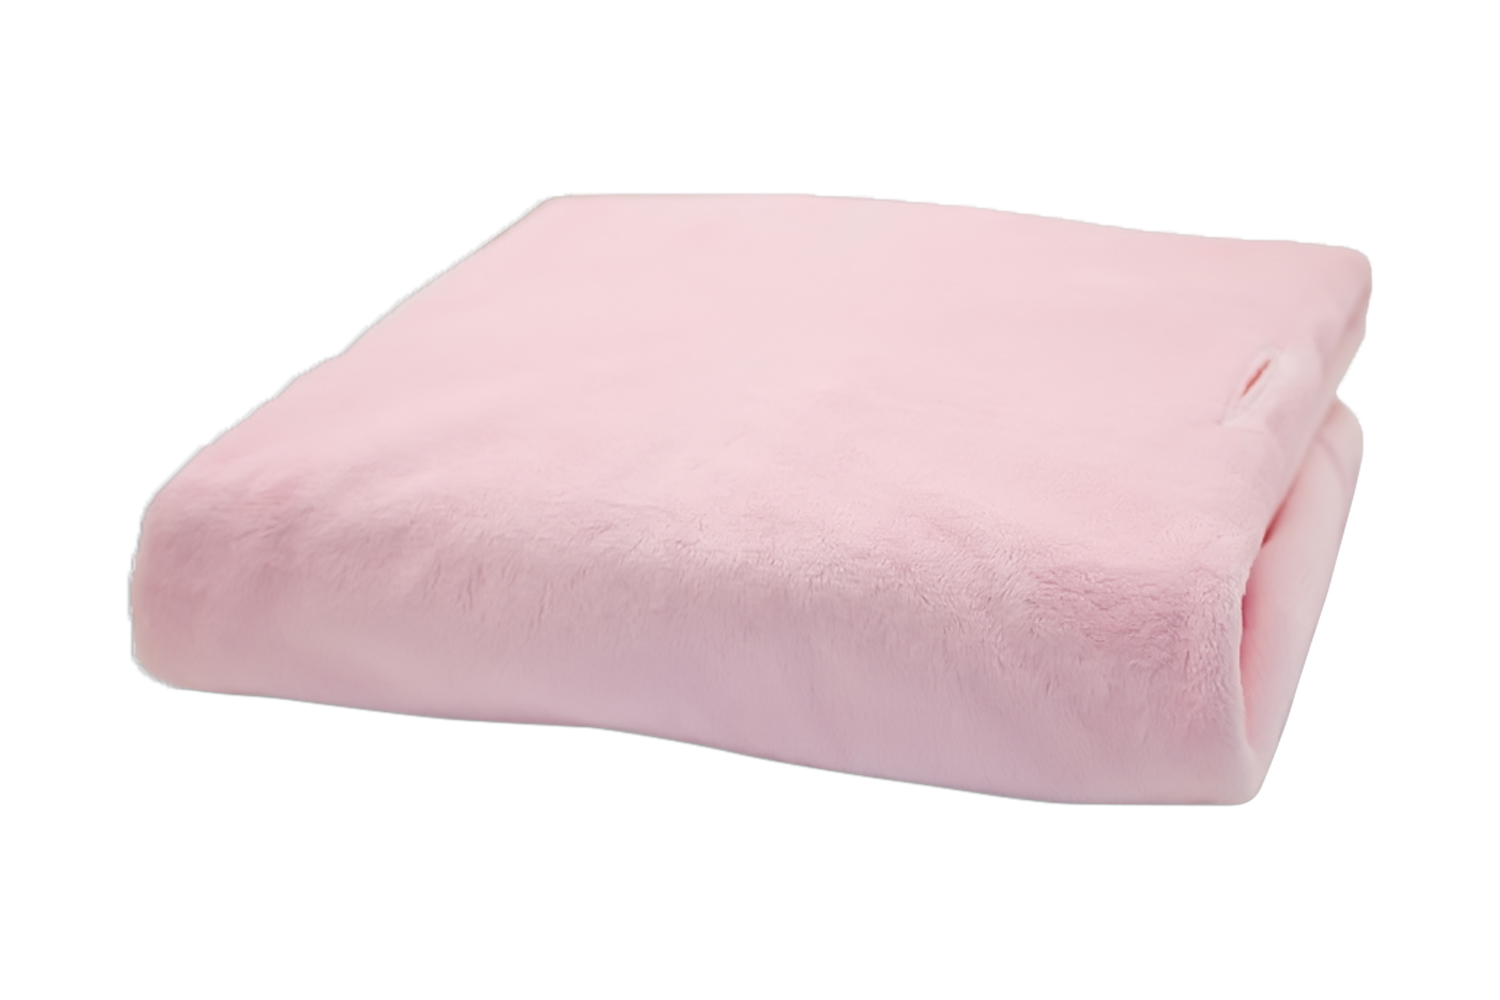 Rumble Tuff Kit Minky Contour Changing Pad Cover - Compact, Powder Pink